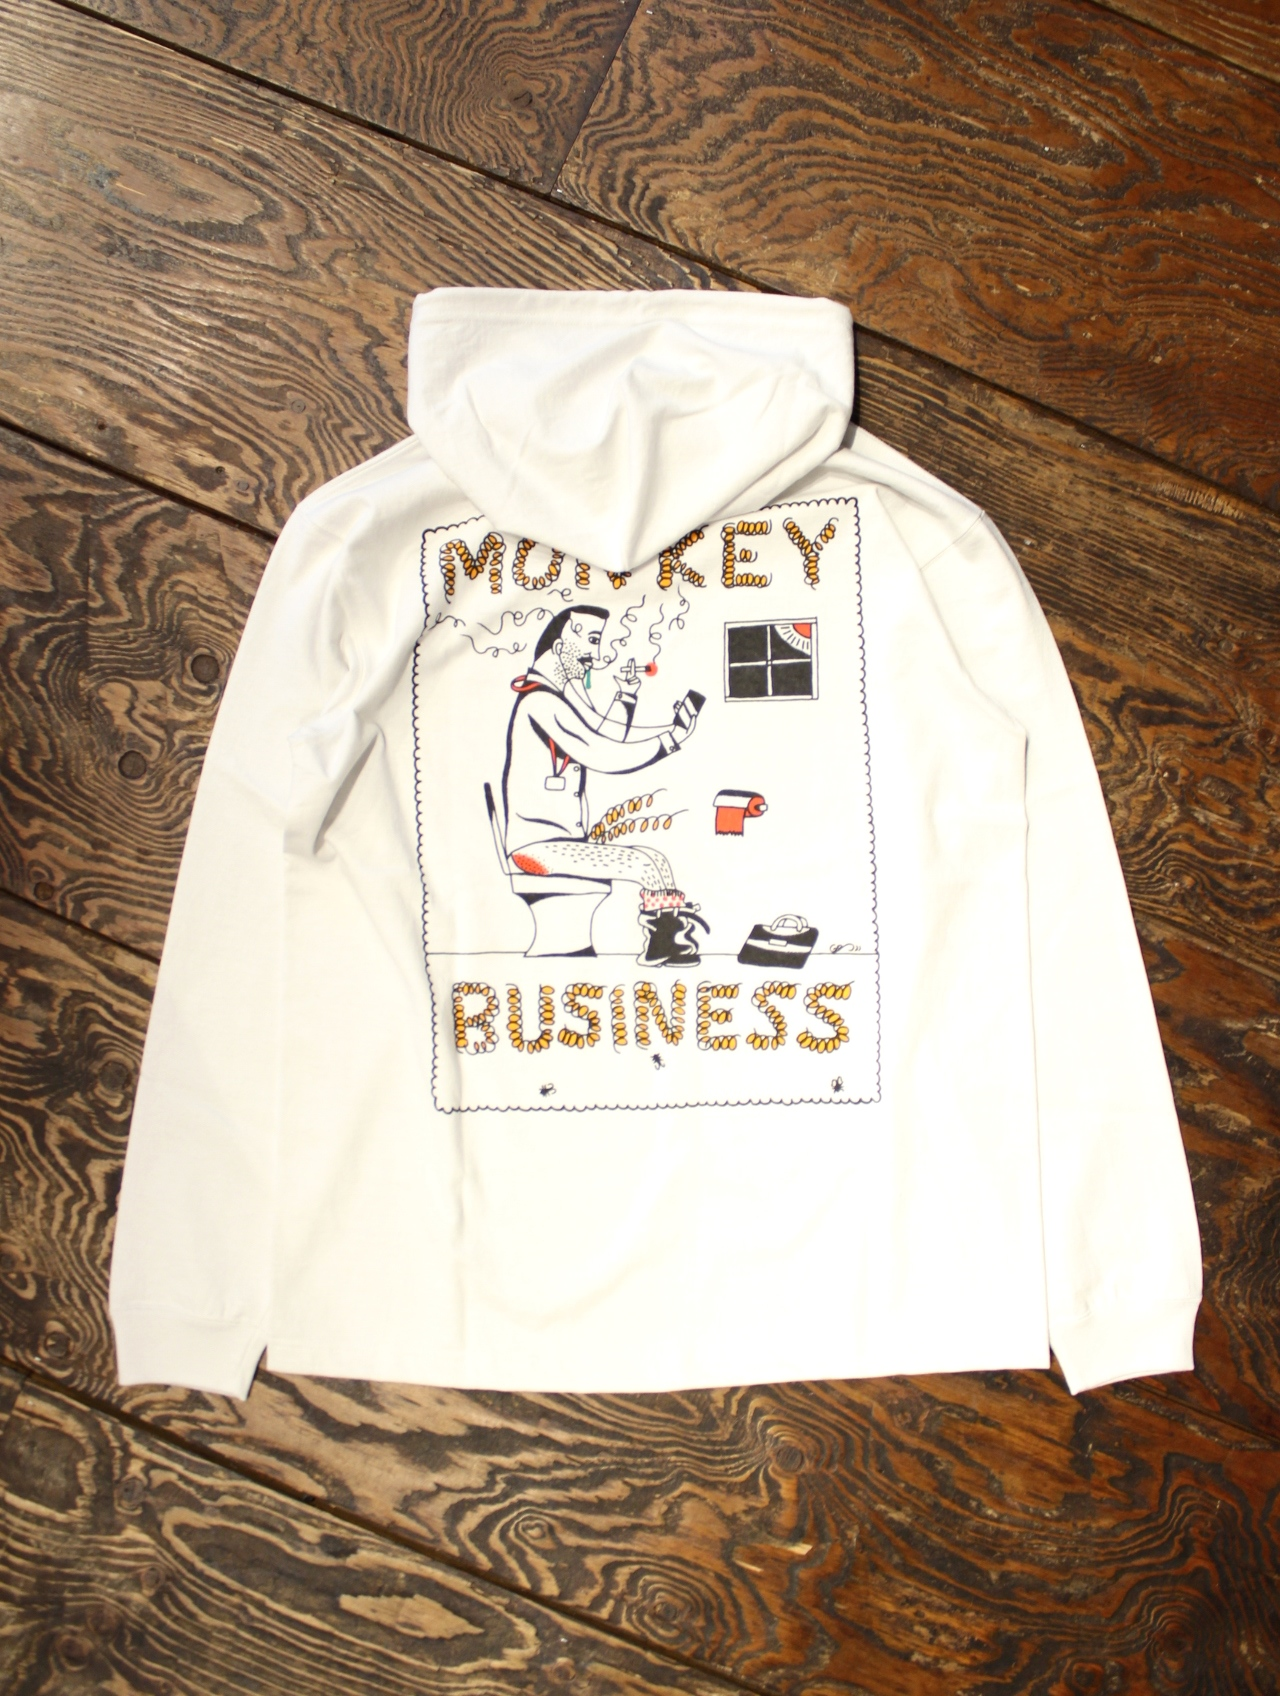 COOTIE  「 Hooded Print L/S Tee (MONKEY BUSINESS) 」  フーデットプリントロングスリーブティーシャツ